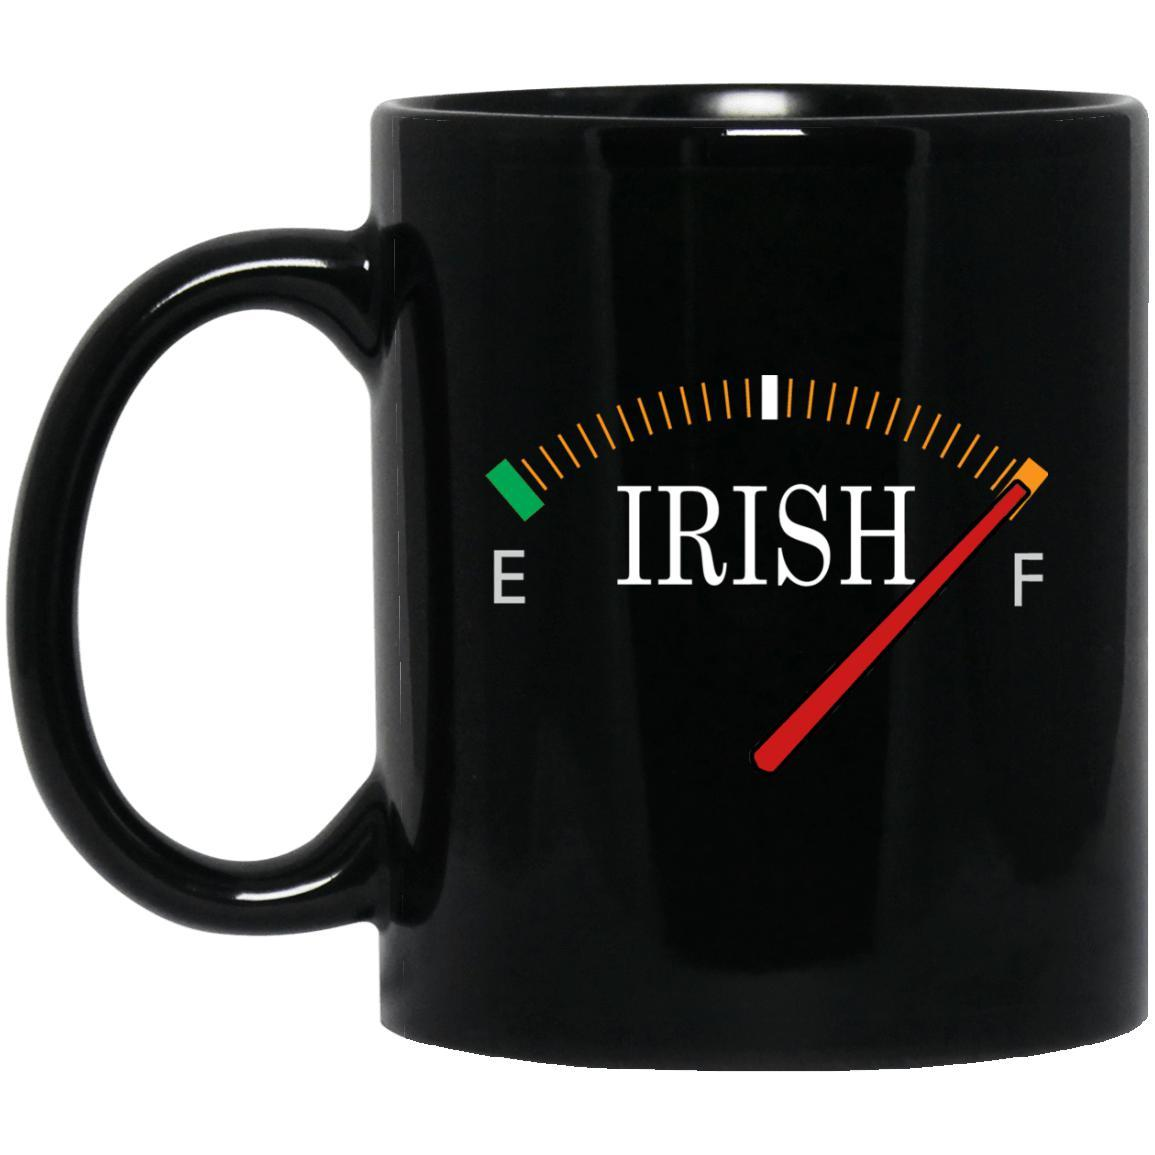 Are You Full Irish?